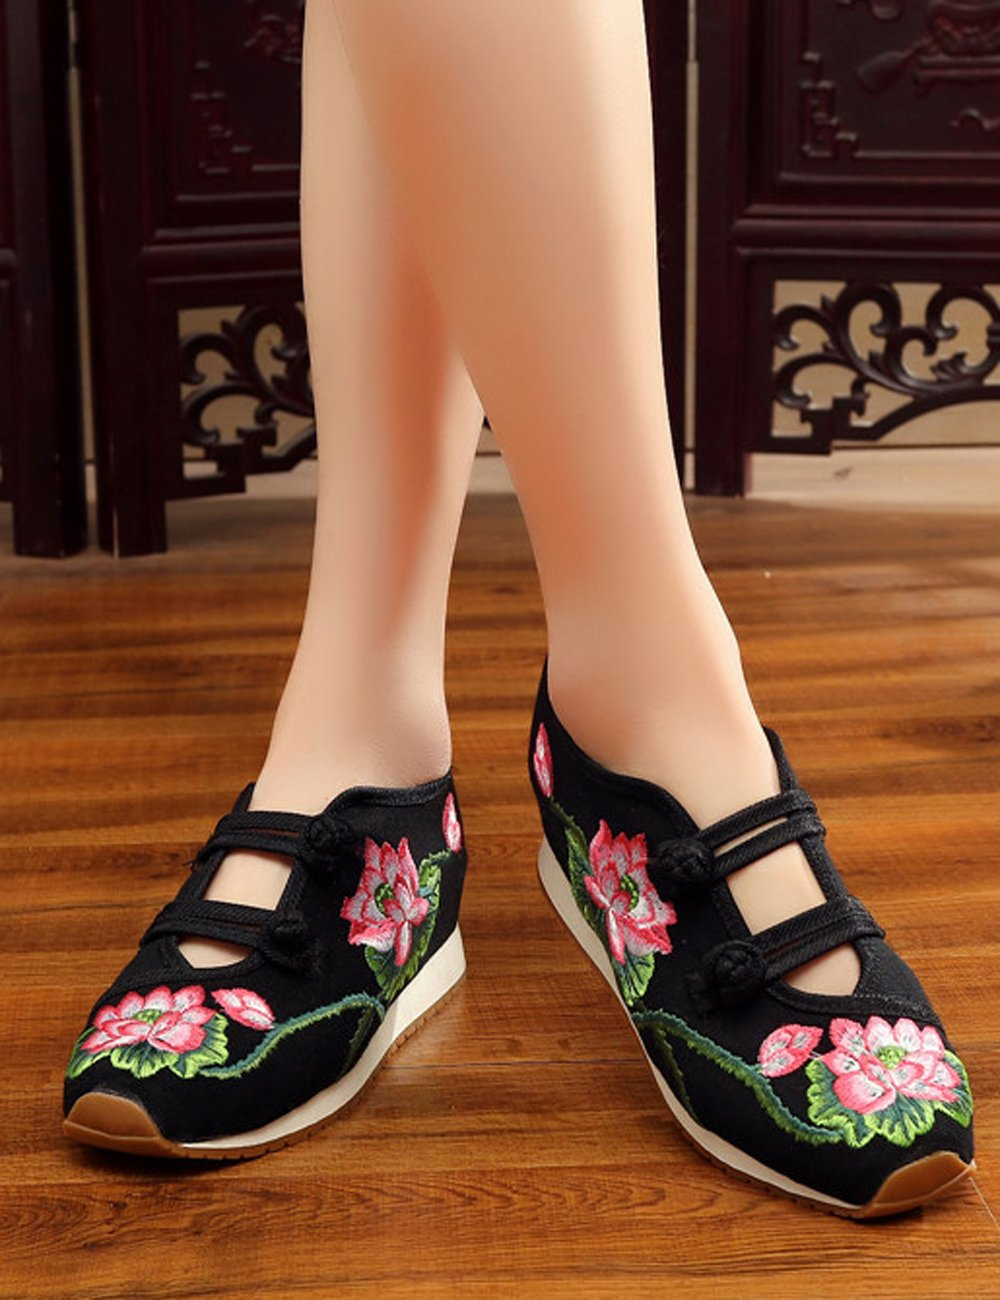 Womens Canvas Lotus Embroidered Cloth Shoes Increased Fashion Flats Casual Walking Sneakers Fashion Increased Traveling Shoes B01M3P5Z1X 7 B(M) US|Black 65e912